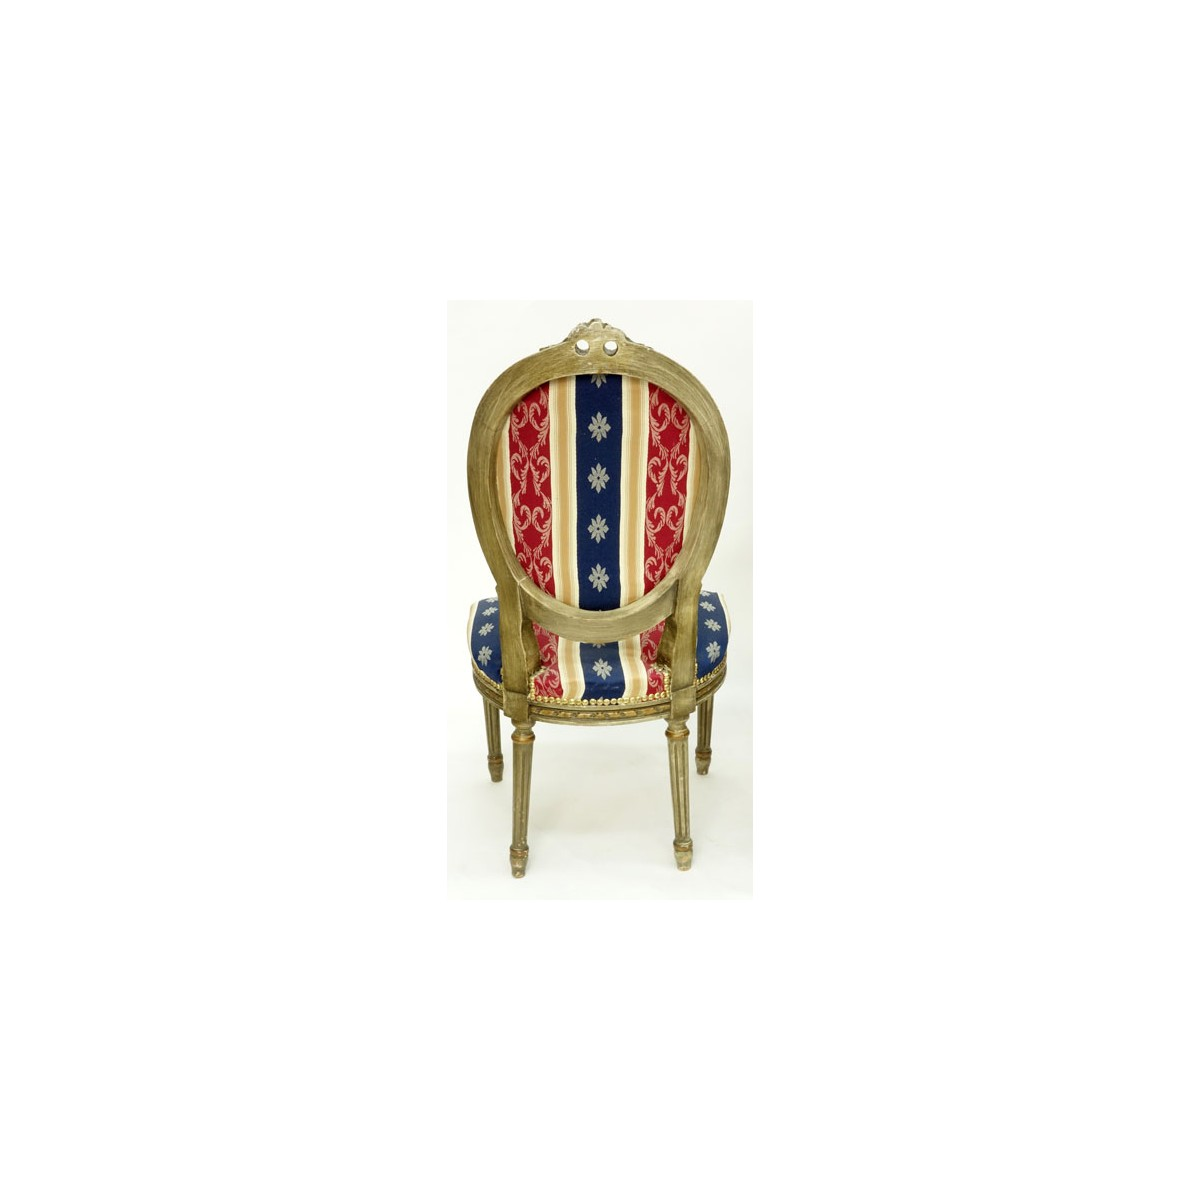 Louis XVI Style 3pc. Upholstered Salon Furniture Set. Includes: s